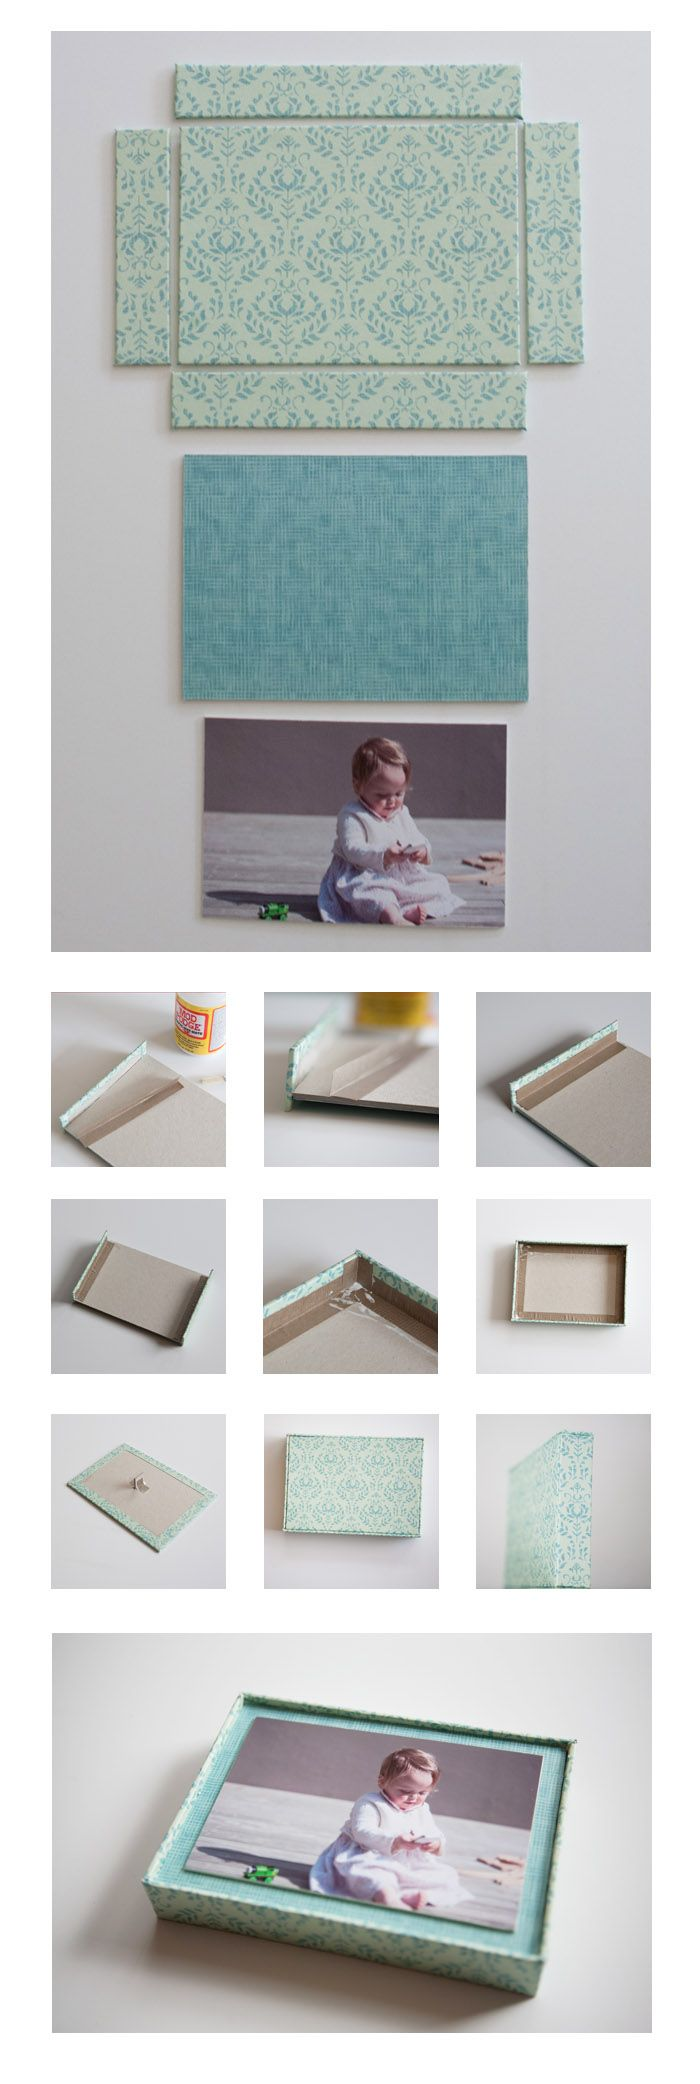 Box Frame - photography project from Love Your Pics- Difficulty: Mostly straightforward, but the measuring needs to be accurate.  Time: 2 hours plus drying time.  You'll need: A photo,  2 - 2.5mm thick craft card,  Paper to cover,  Mod Podge or strong craft glue.  This is a DIY photo frame project for an unusual and eye catching box frame.